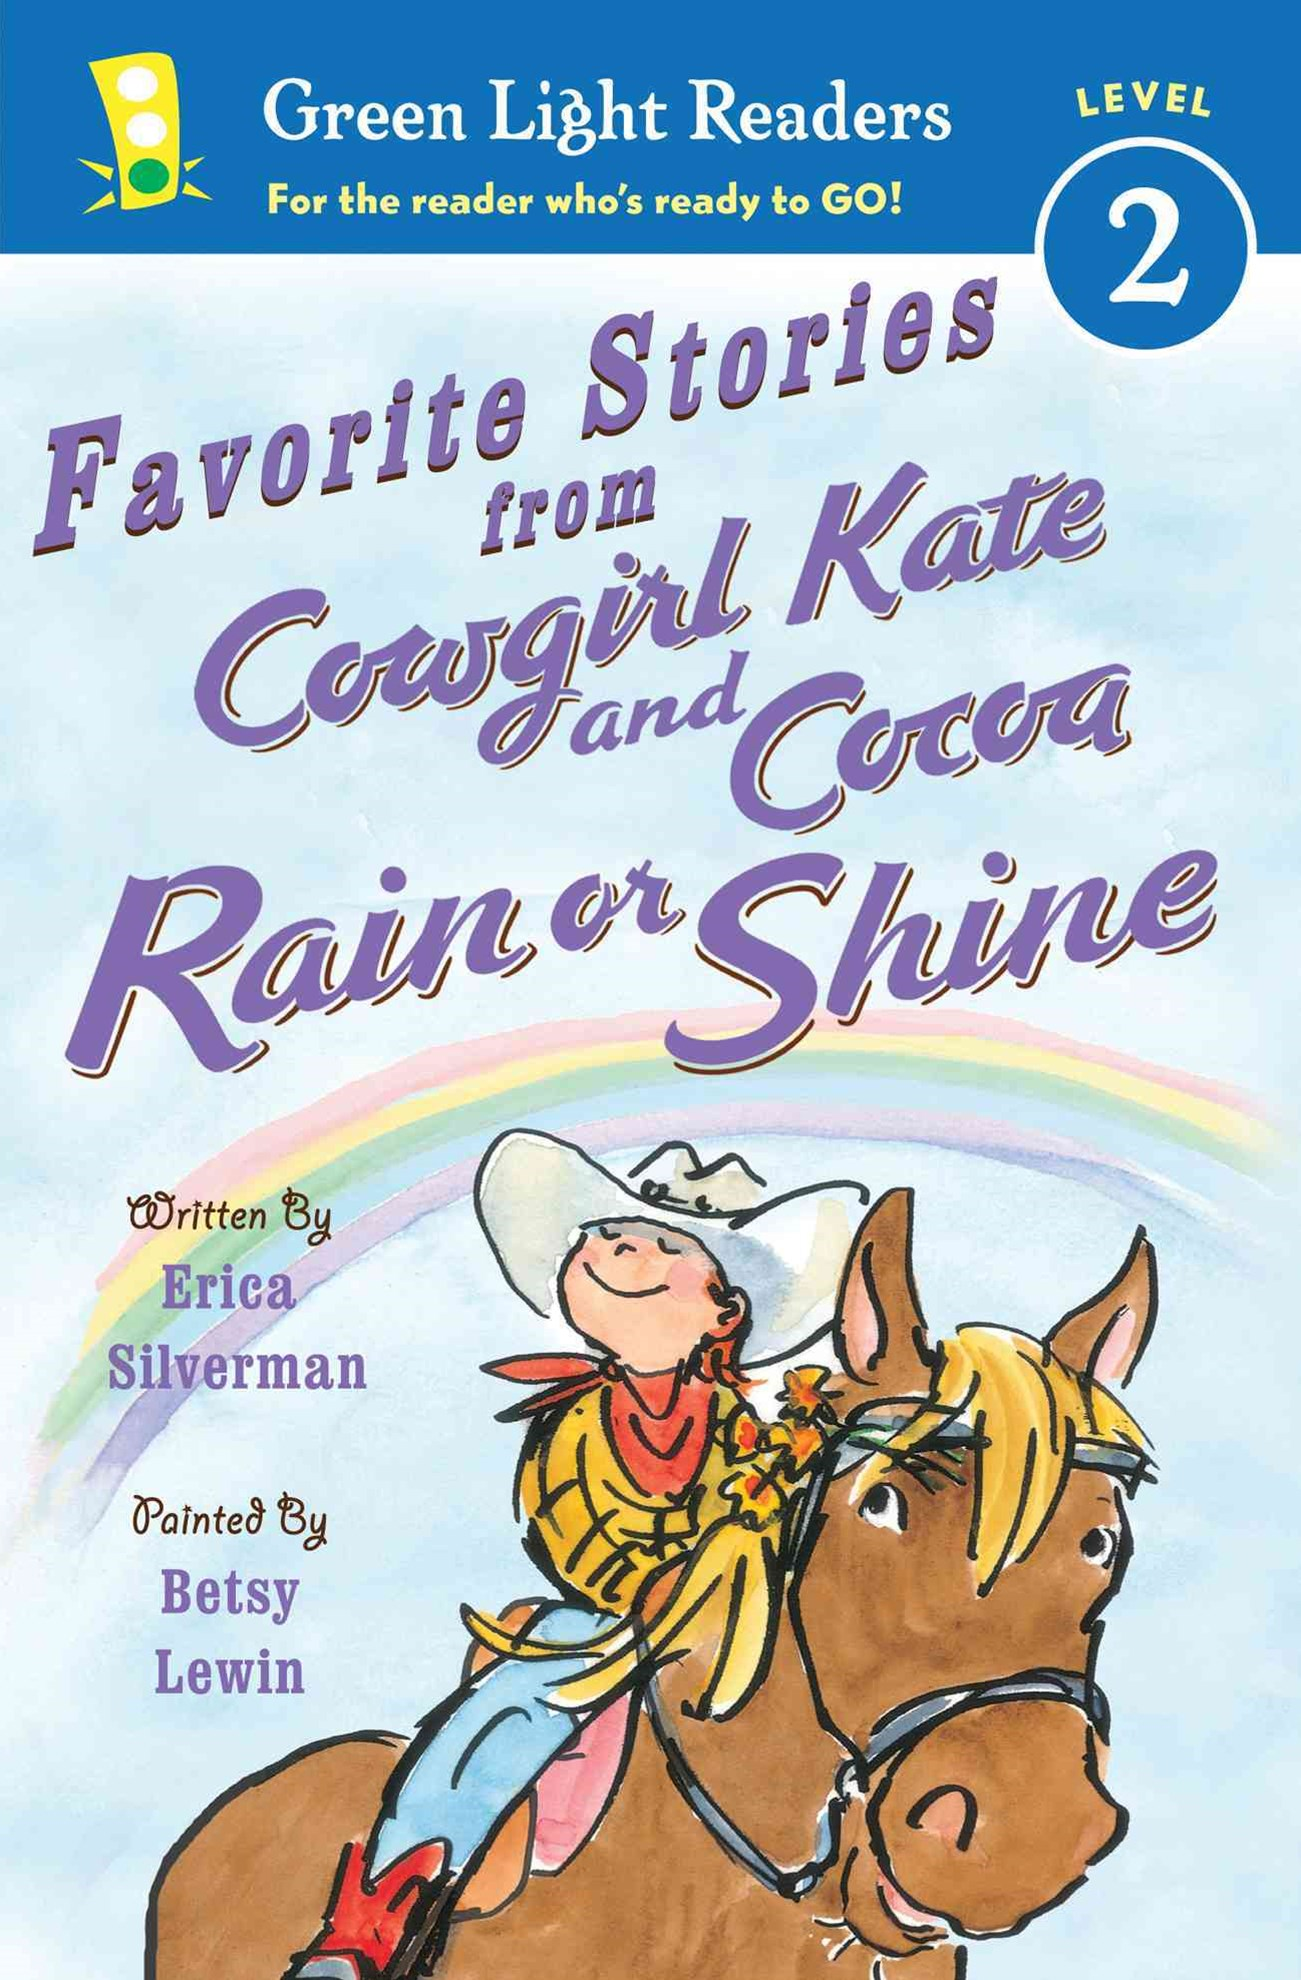 Favorite Stories from Cowgirl Kate and Cocoa: Rain or Shine  GLR L2